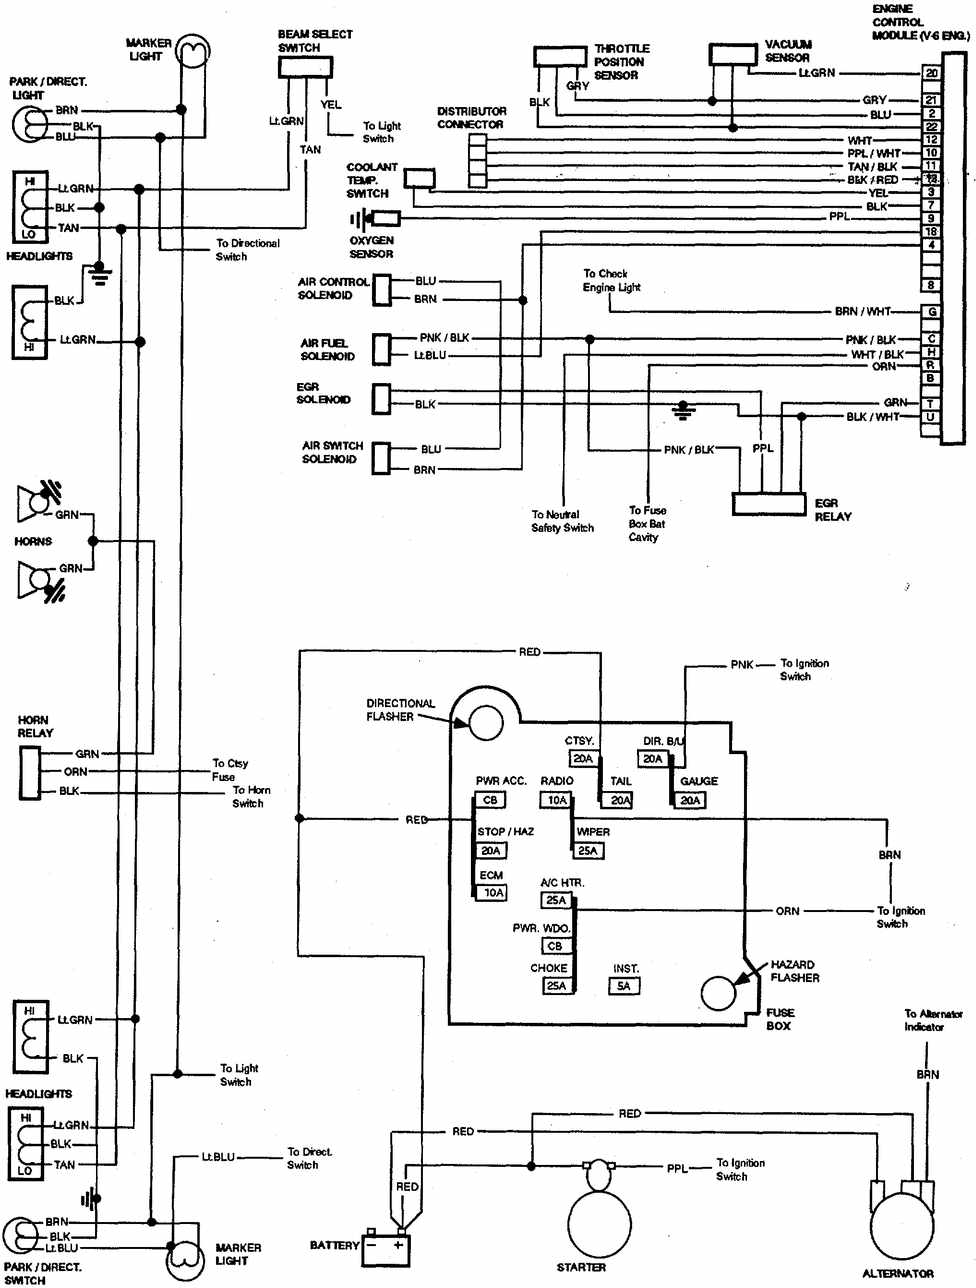 Modine Pa Wiring Diagram as well 4 Wire Relay Wiring Diagram besides Wiring Diagram For Electric Fireplace moreover Wiring Diagram For Gas Furnace also Honeywell Pipe Stat Wiring Diagram. on spst thermostat wiring